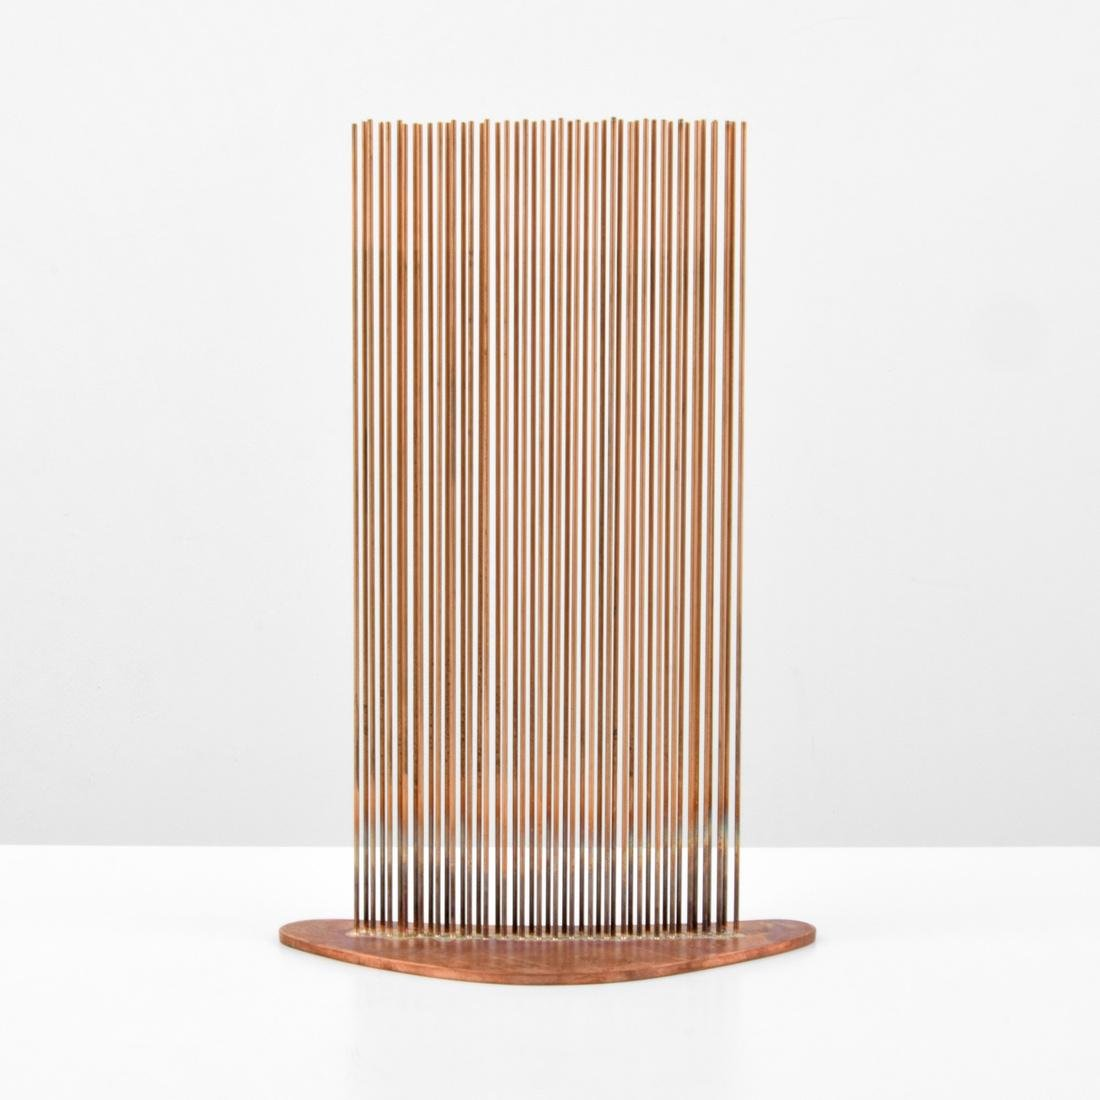 Val Bertoia 2 ROWS FOR CURVED SOUND Sculpture